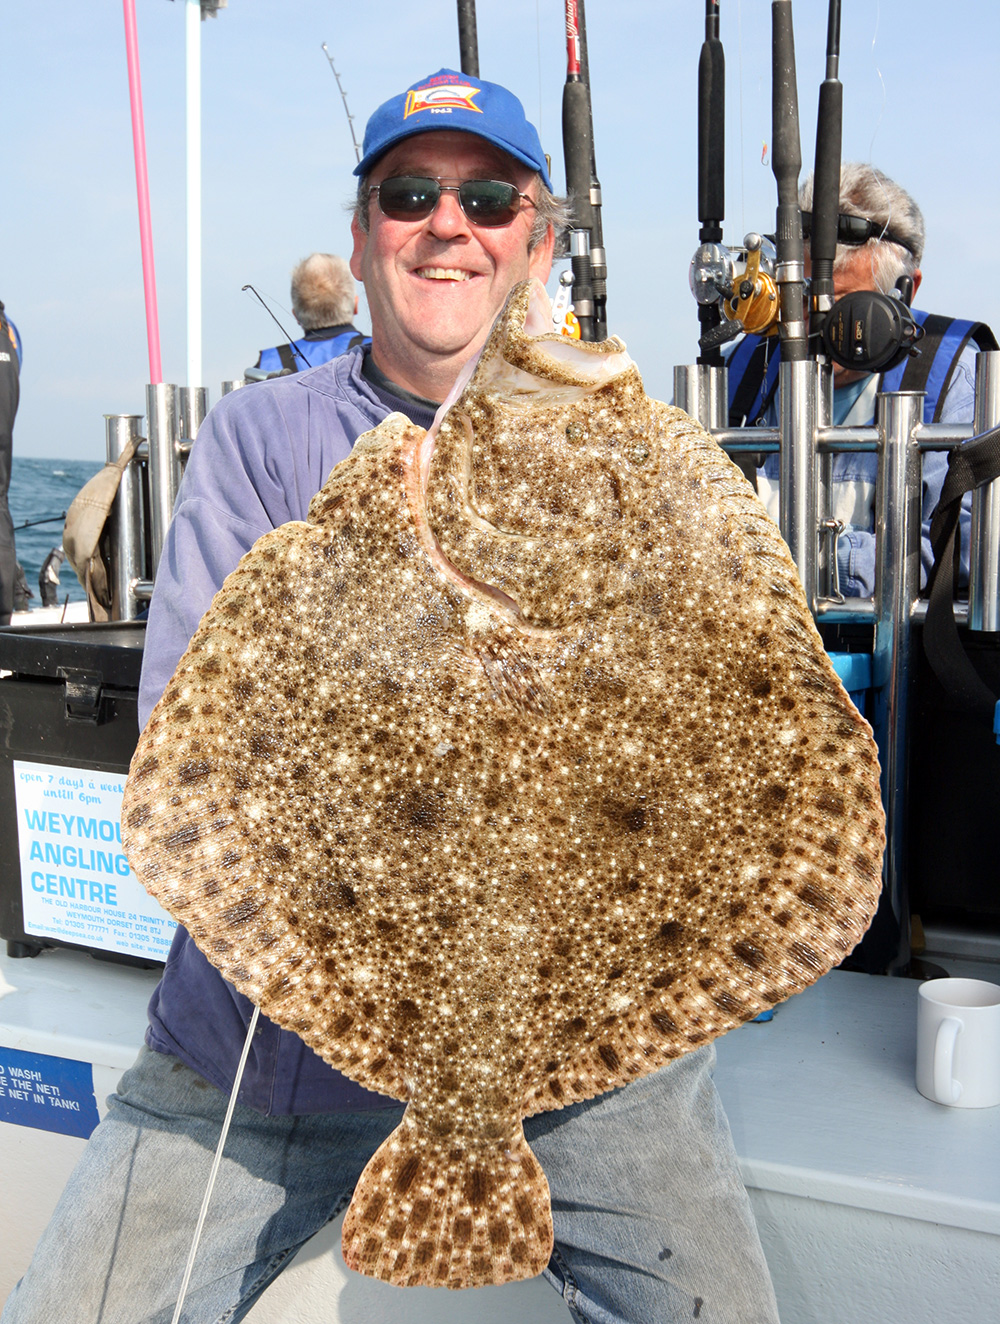 TURBOT RIG FROM THE RIG SHACK SEA FISHING